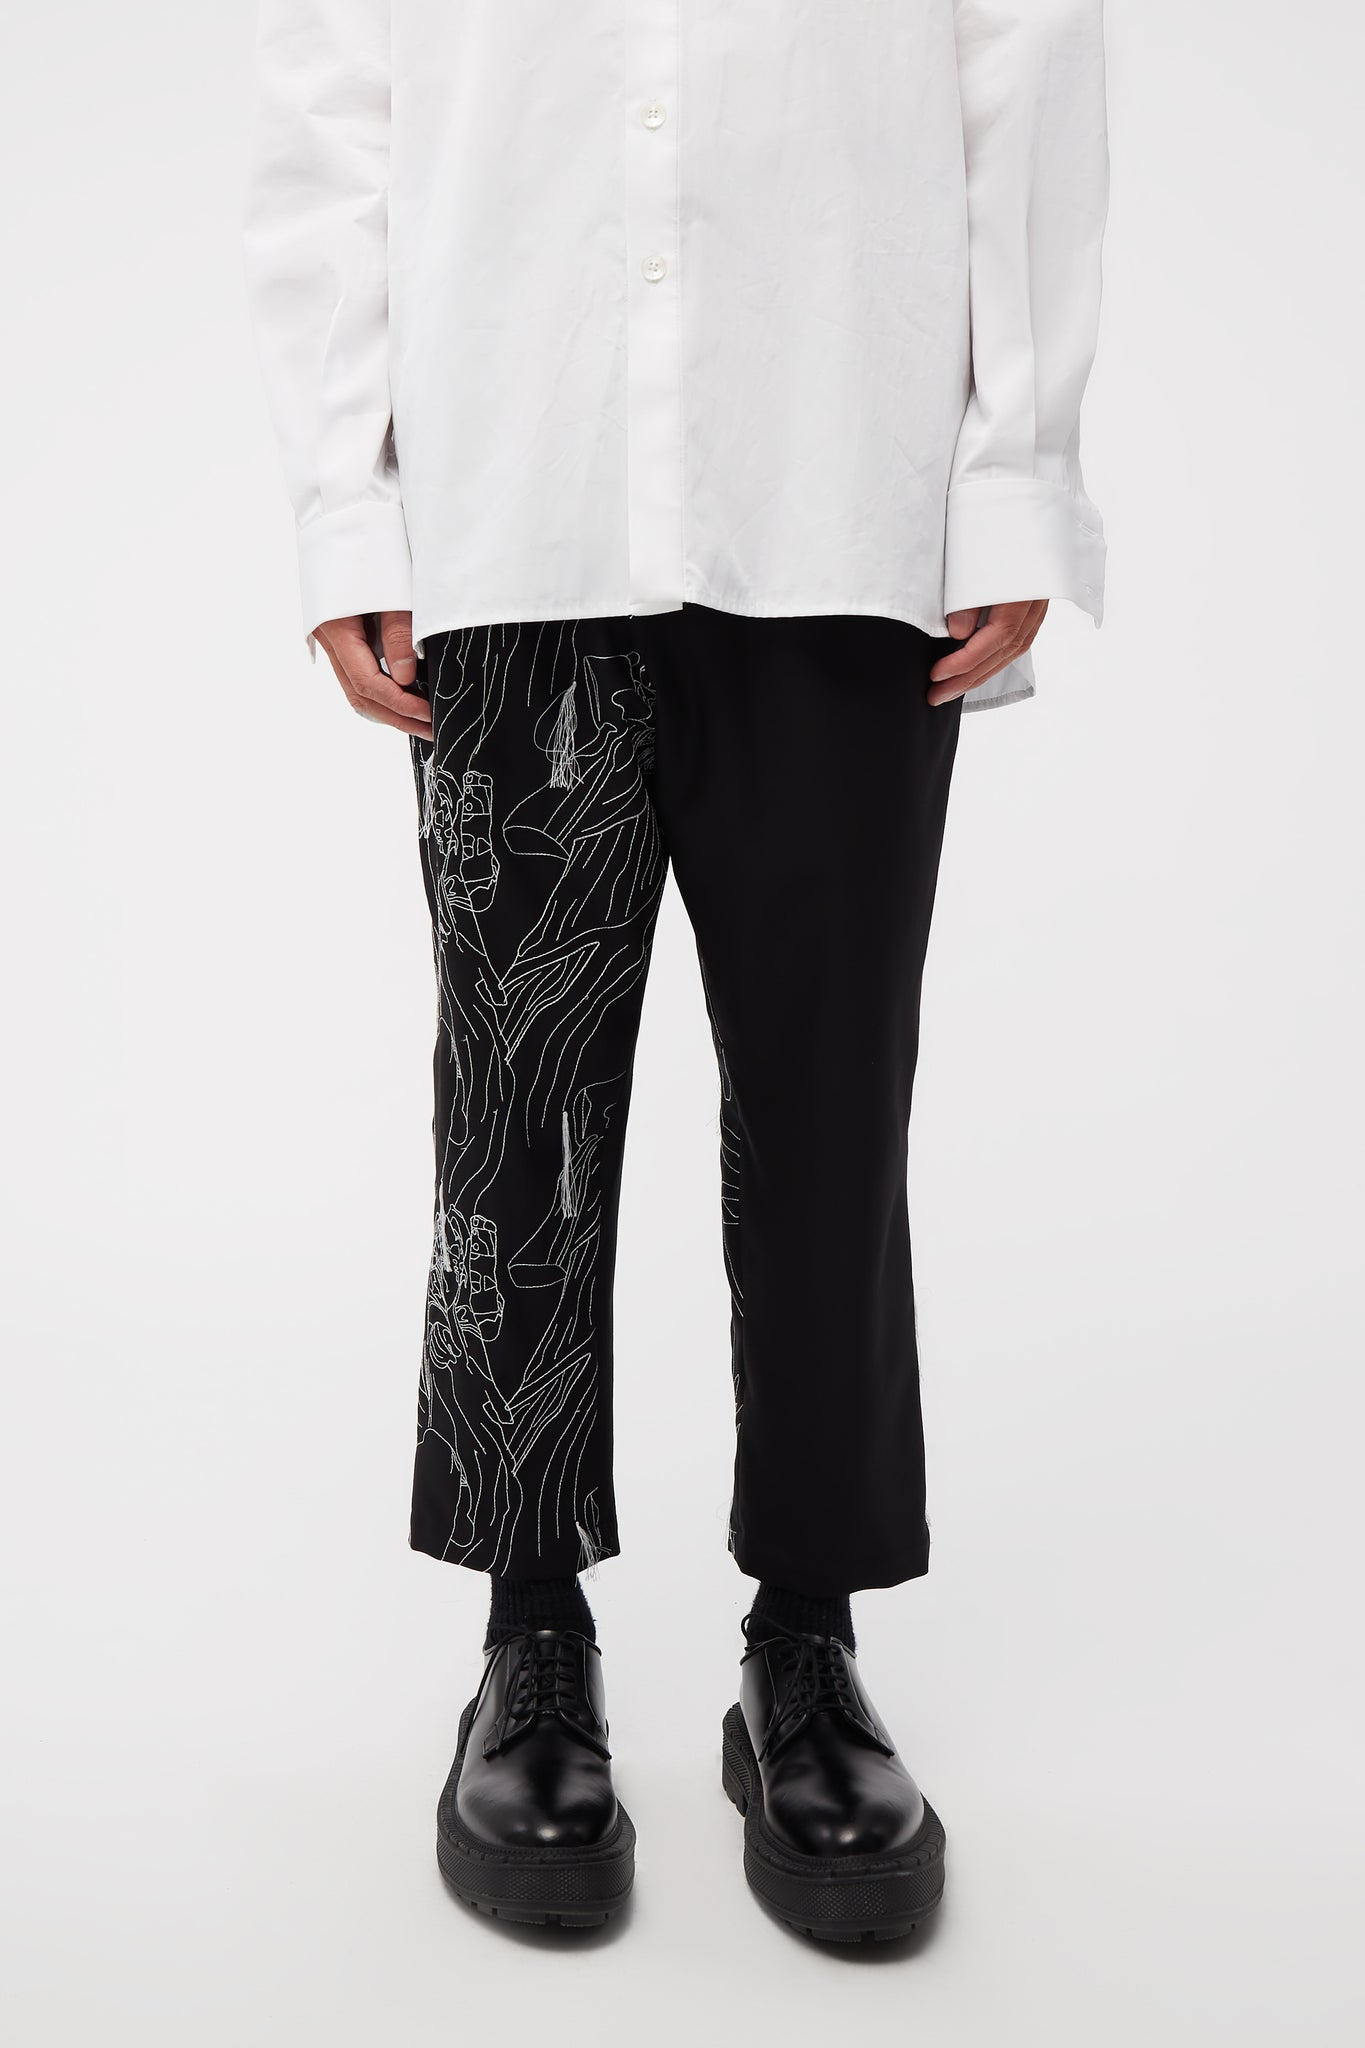 Mich Cropped Trouser Dry Onyx W/ white embroidery logo